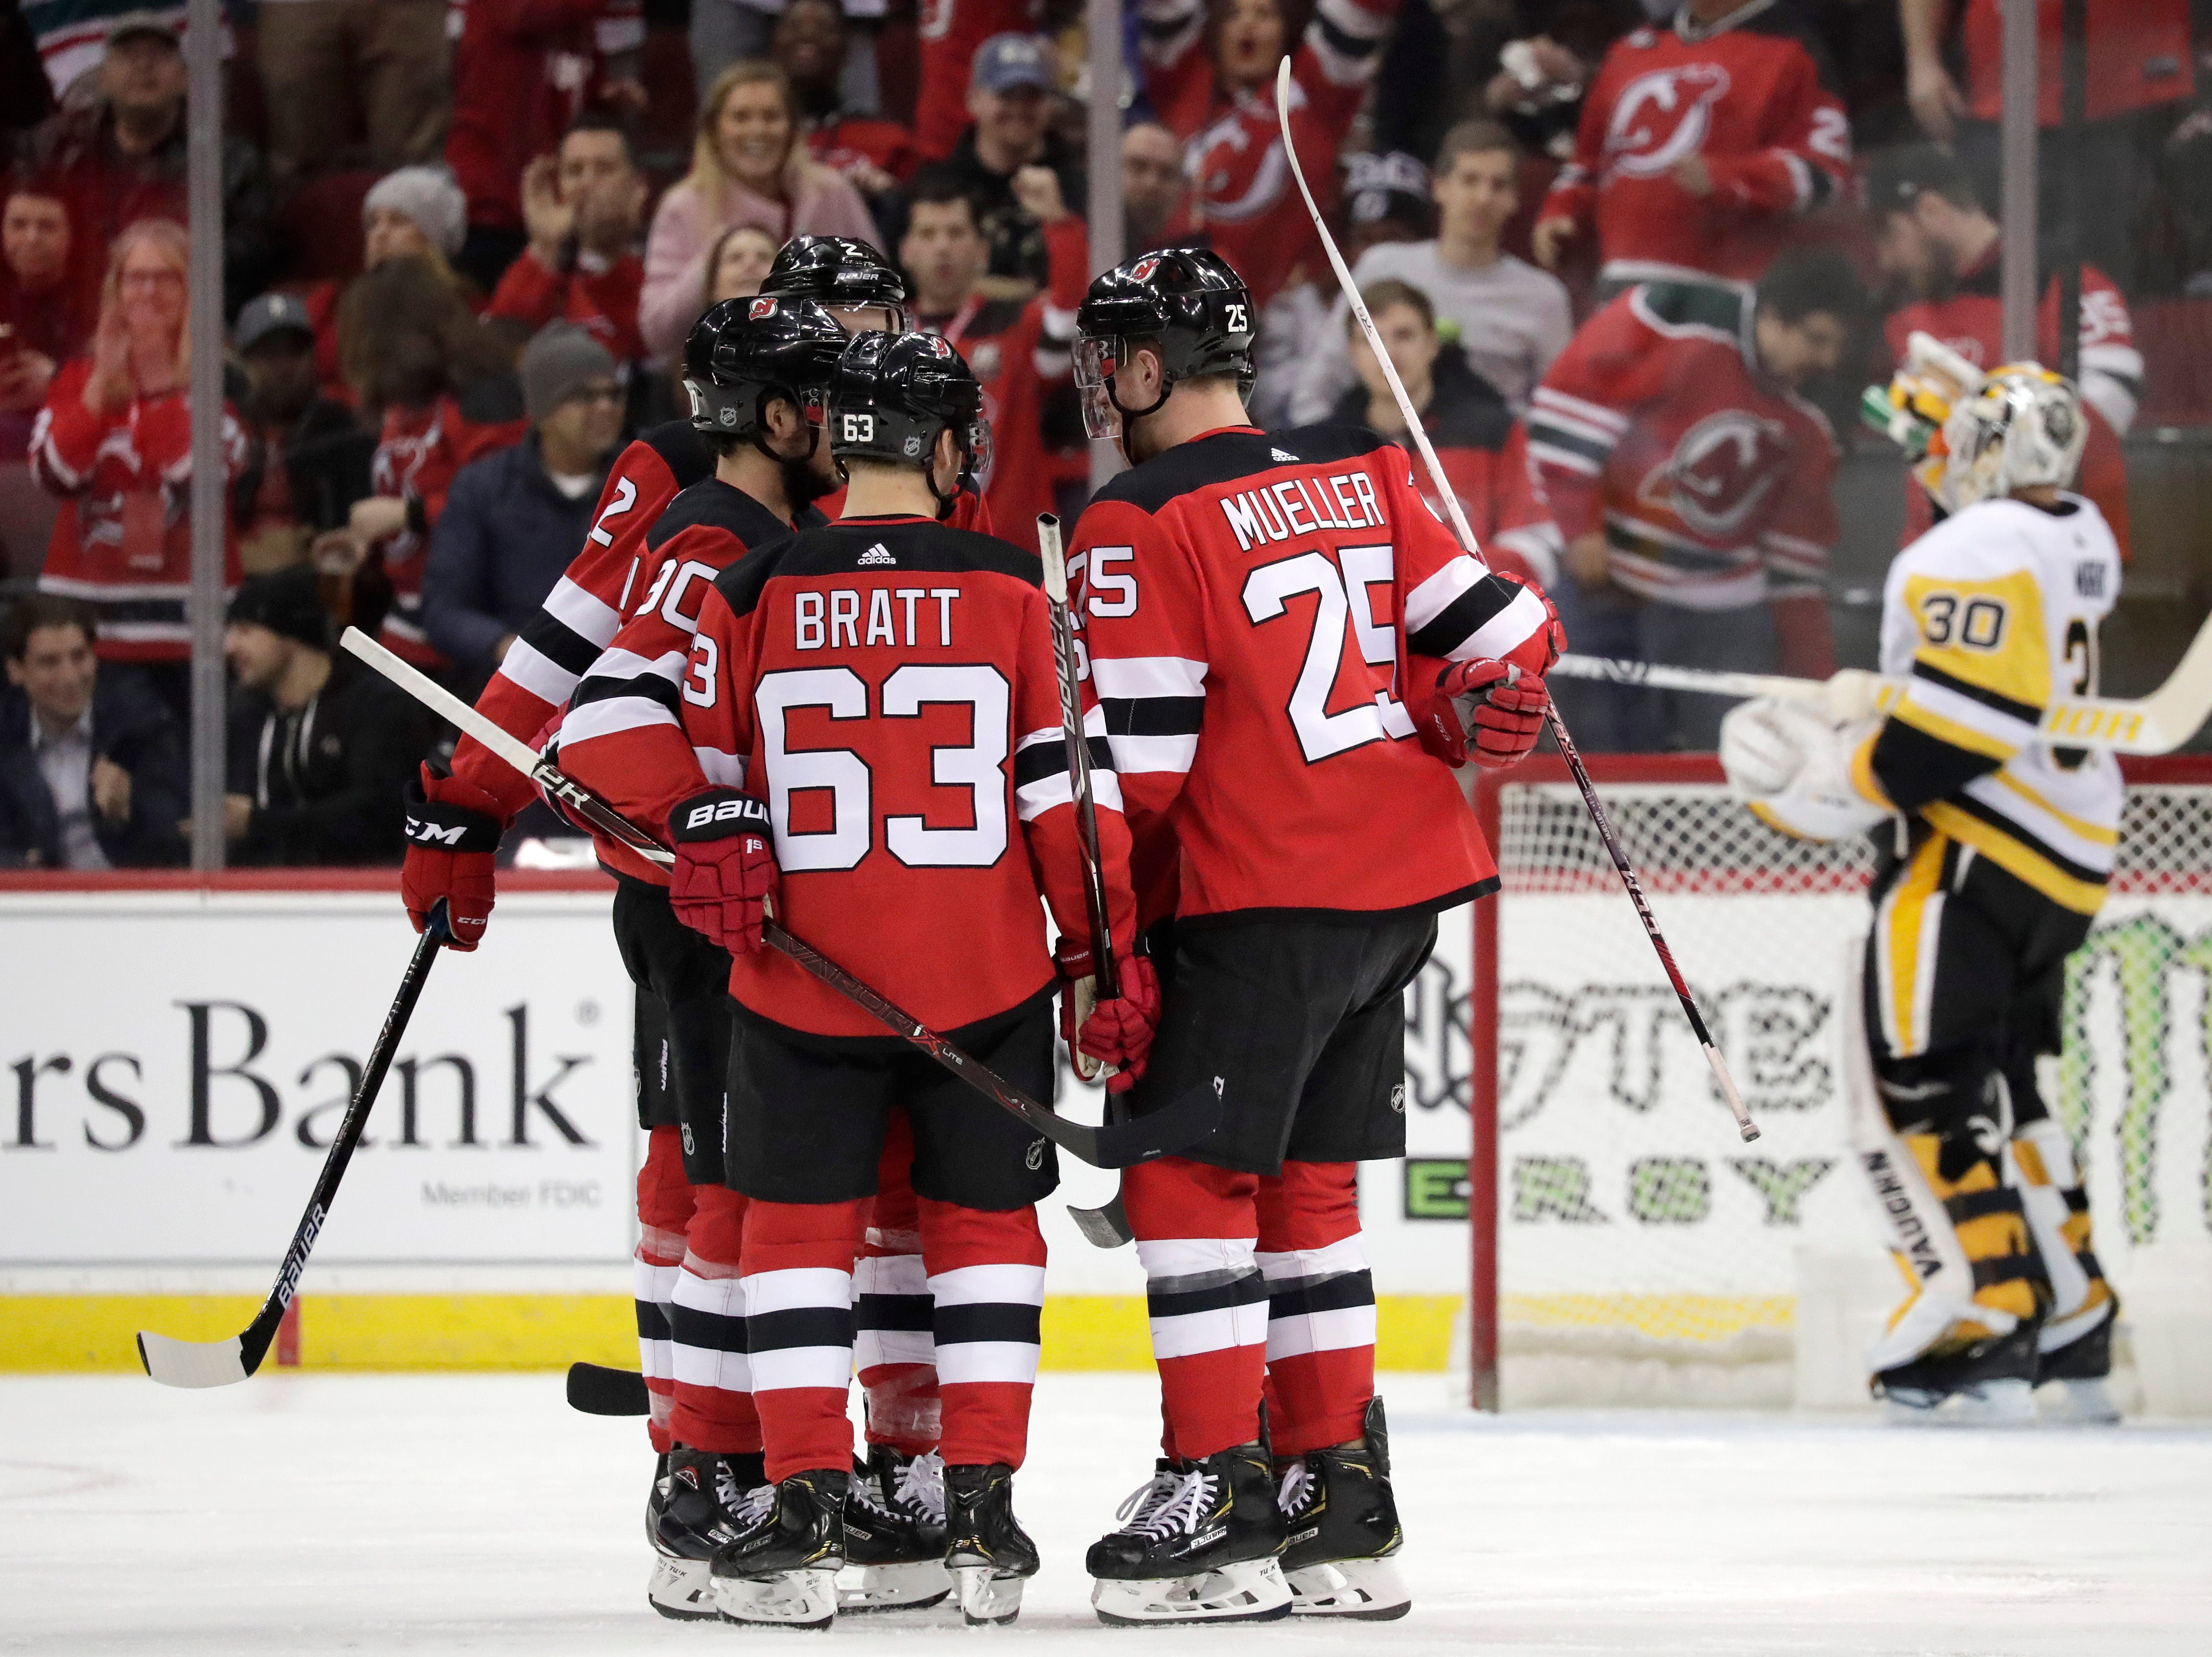 New Jersey Devils players celebrate a goal by Jesper Bratt (63), of Sweden, as Pittsburgh Penguins goaltender Matt Murray, far right, refreshes himself during the first period of an NHL hockey game, Tuesday, Feb. 19, 2019, in Newark, N.J. (AP Photo/Julio Cortez)